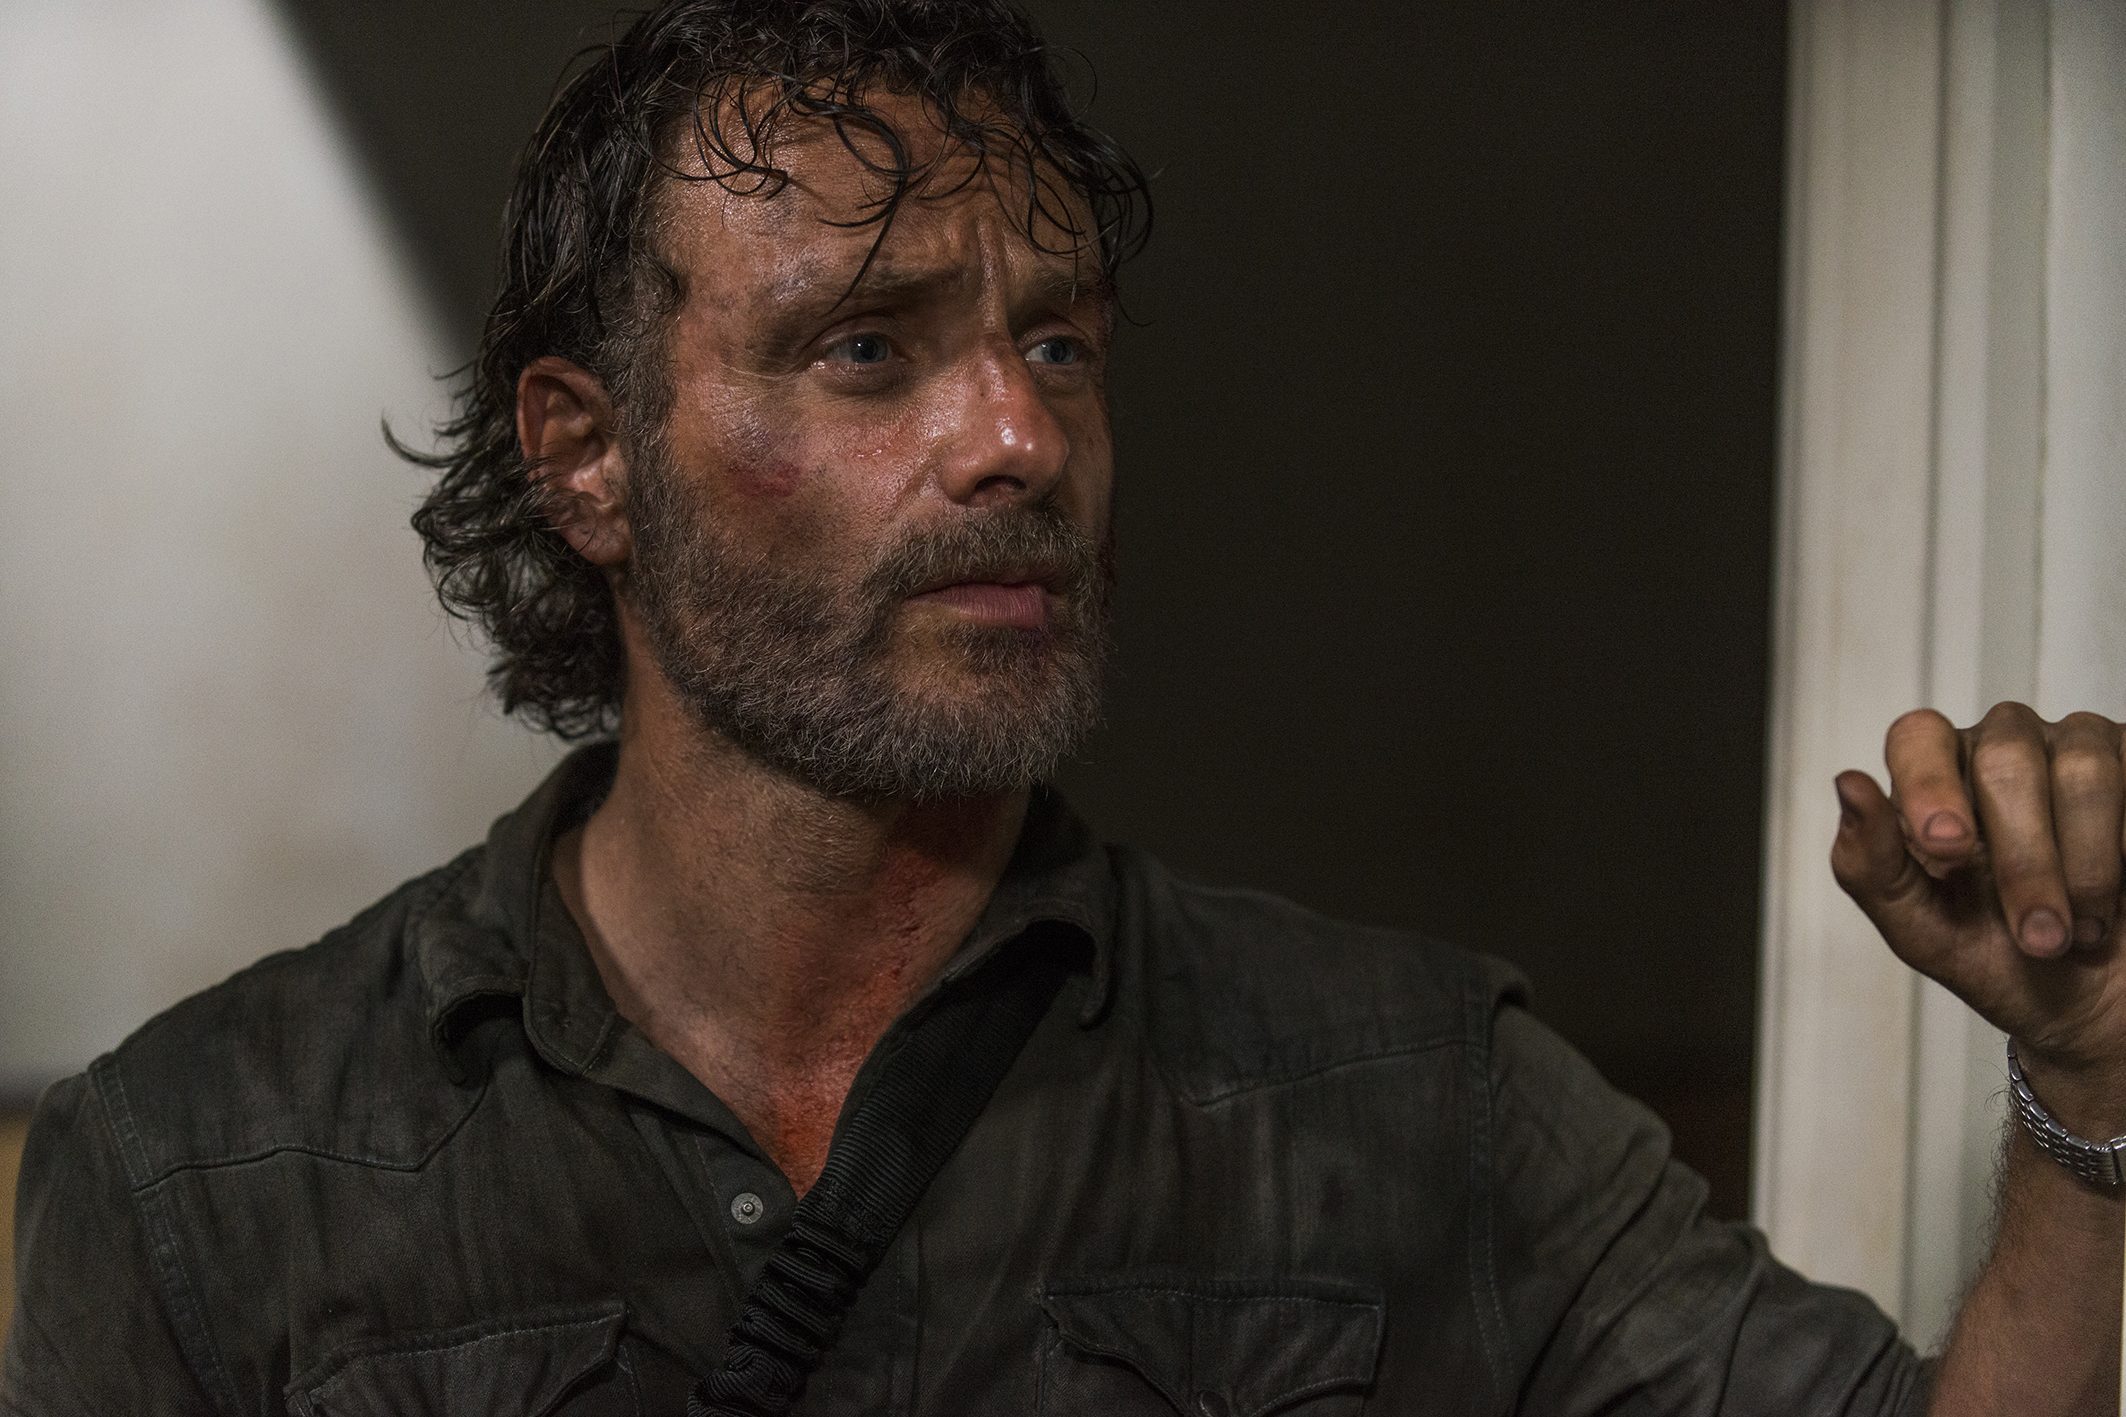 What has happened to The Walking Dead? The show has never been so dull